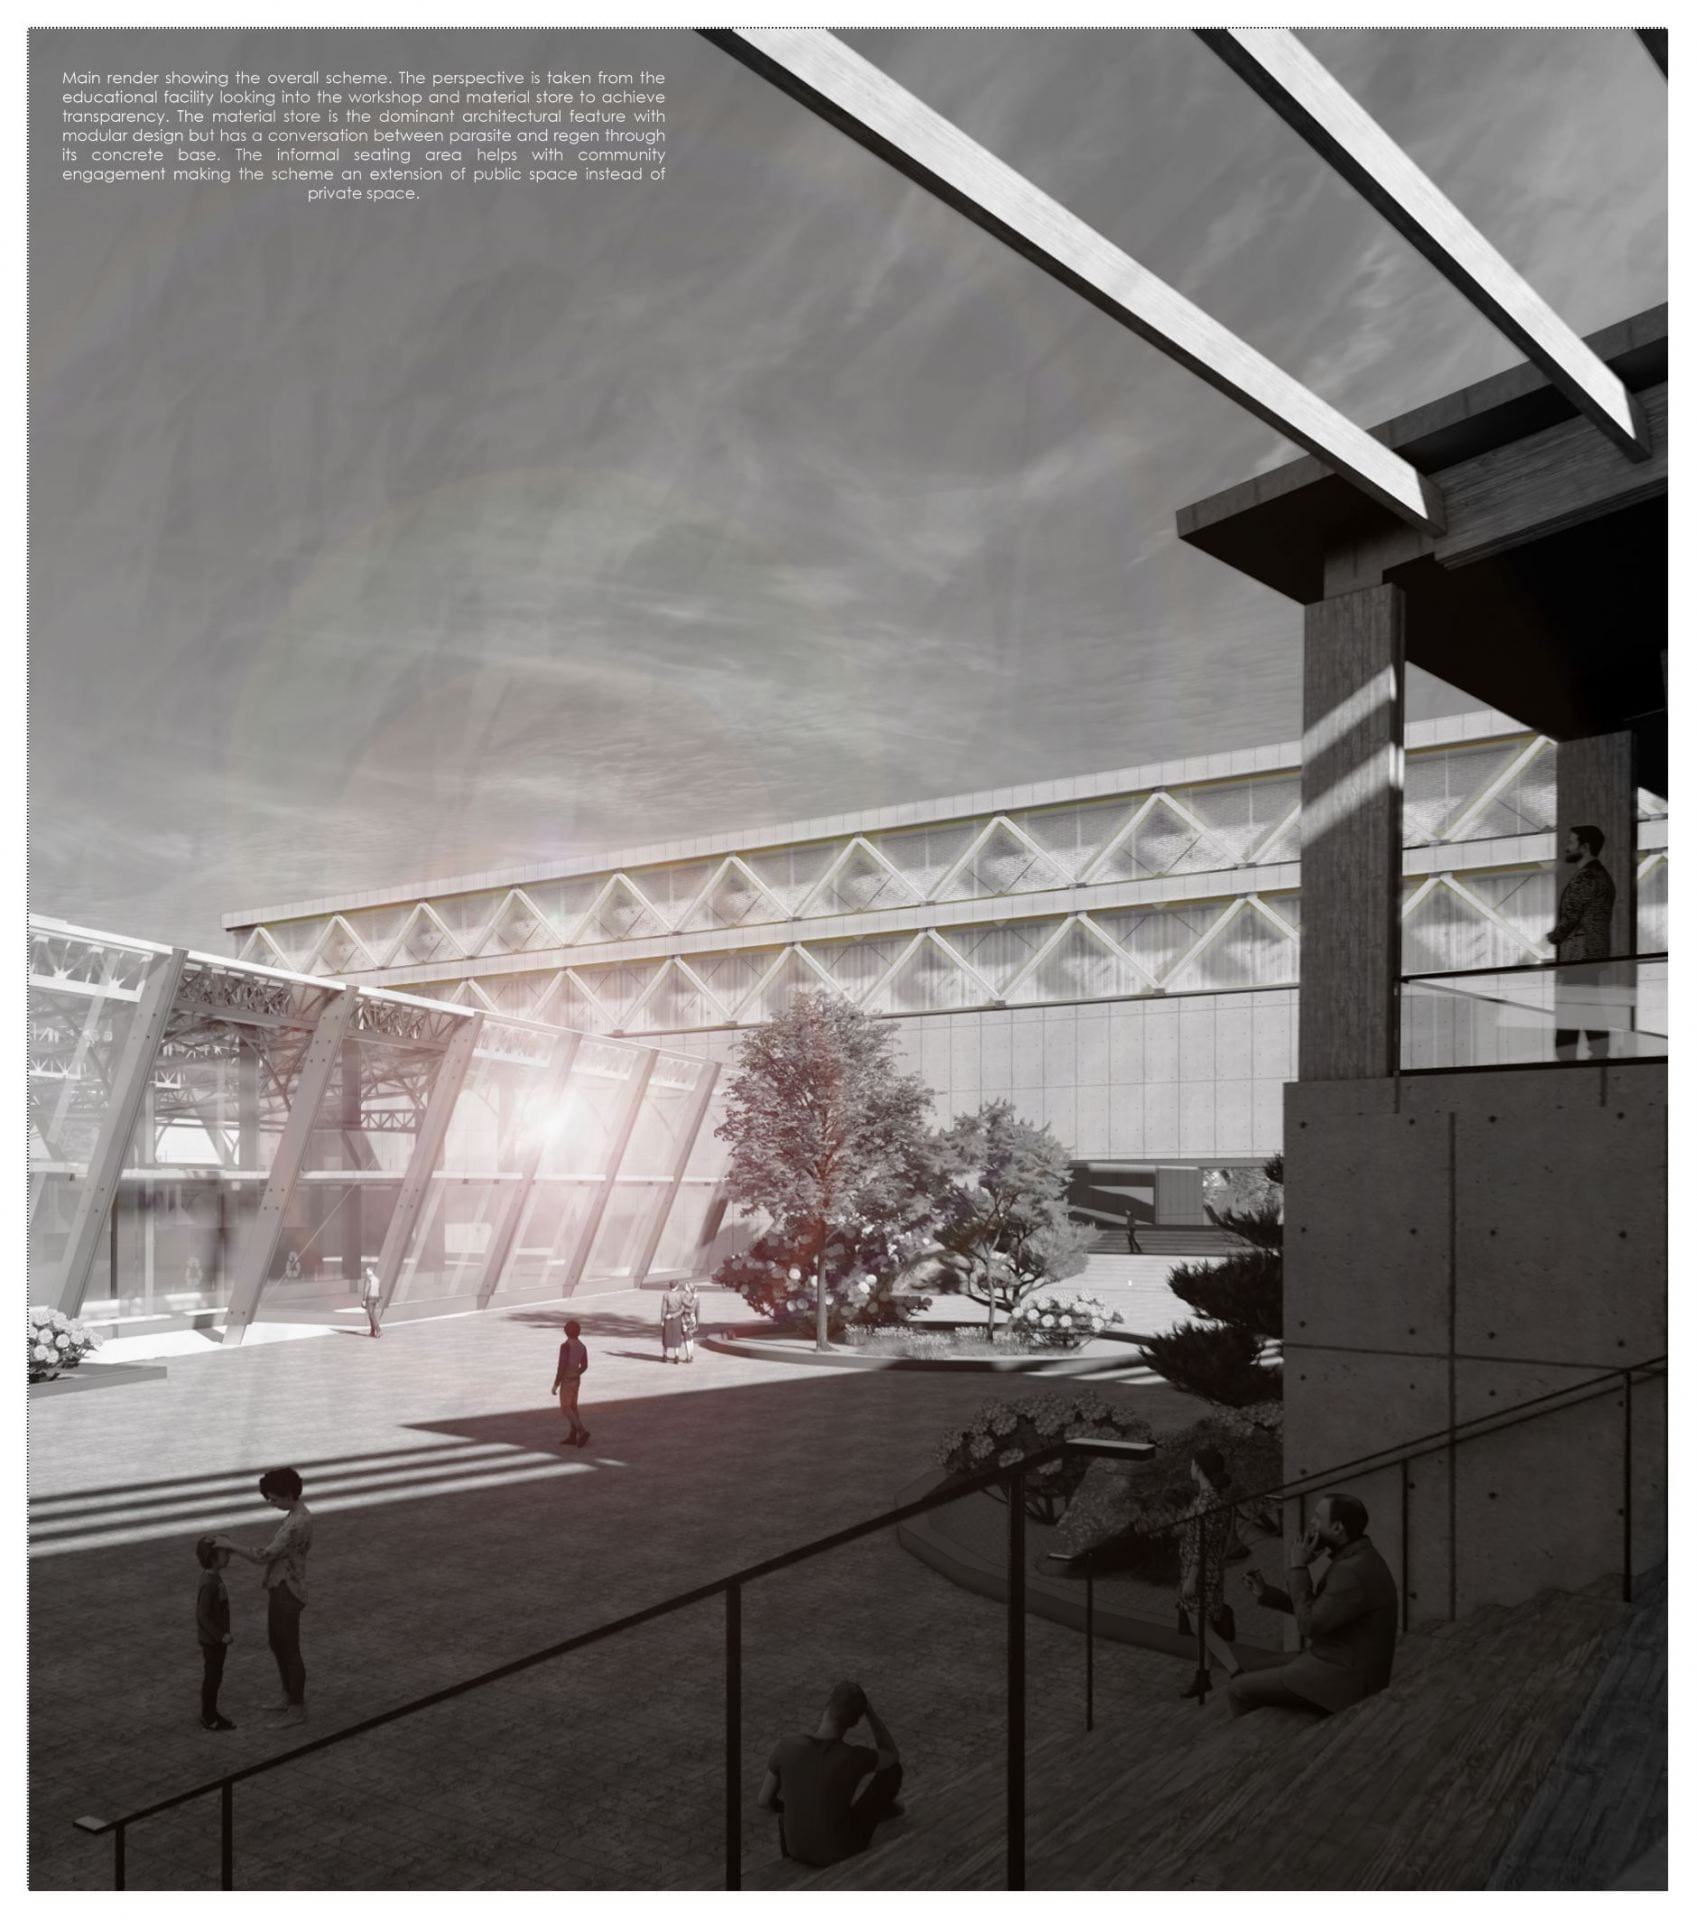 The main visual for the project looked to understand the concept of transparency within the project, to raise awareness for alternative methods of material recycling.